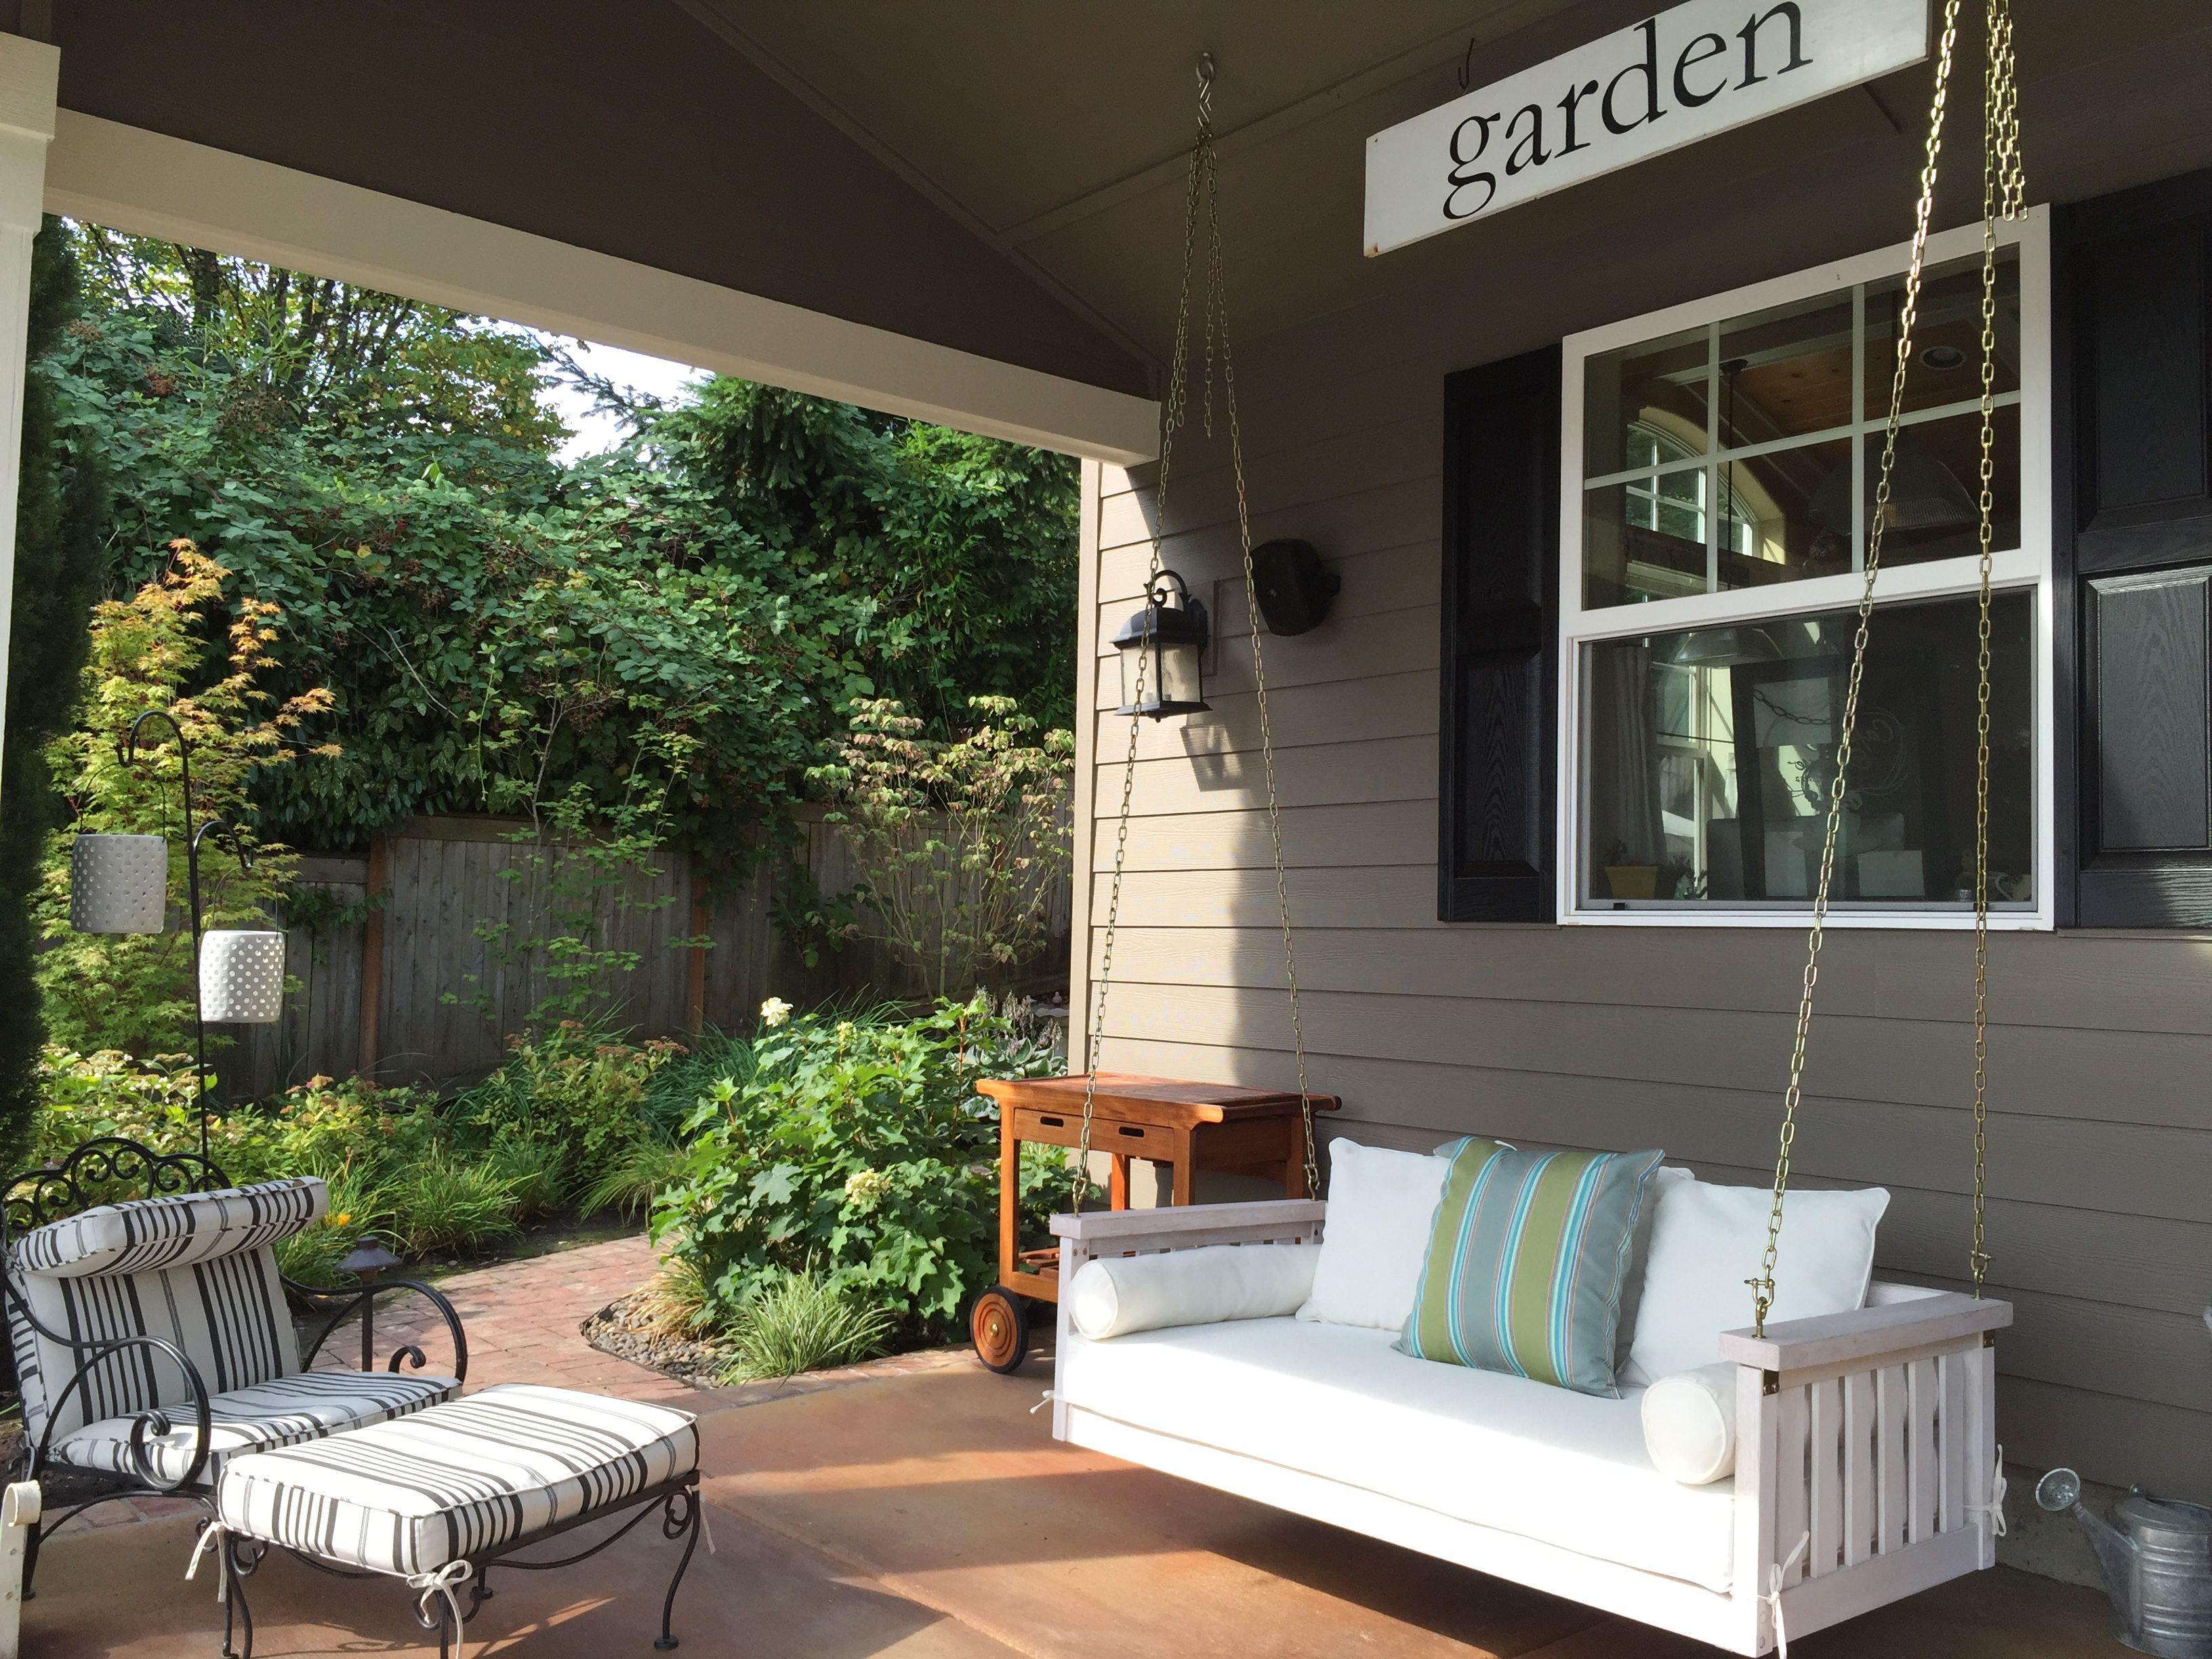 white space slows down.  Create a spot right out your back door to enjoy white space.  #write31days